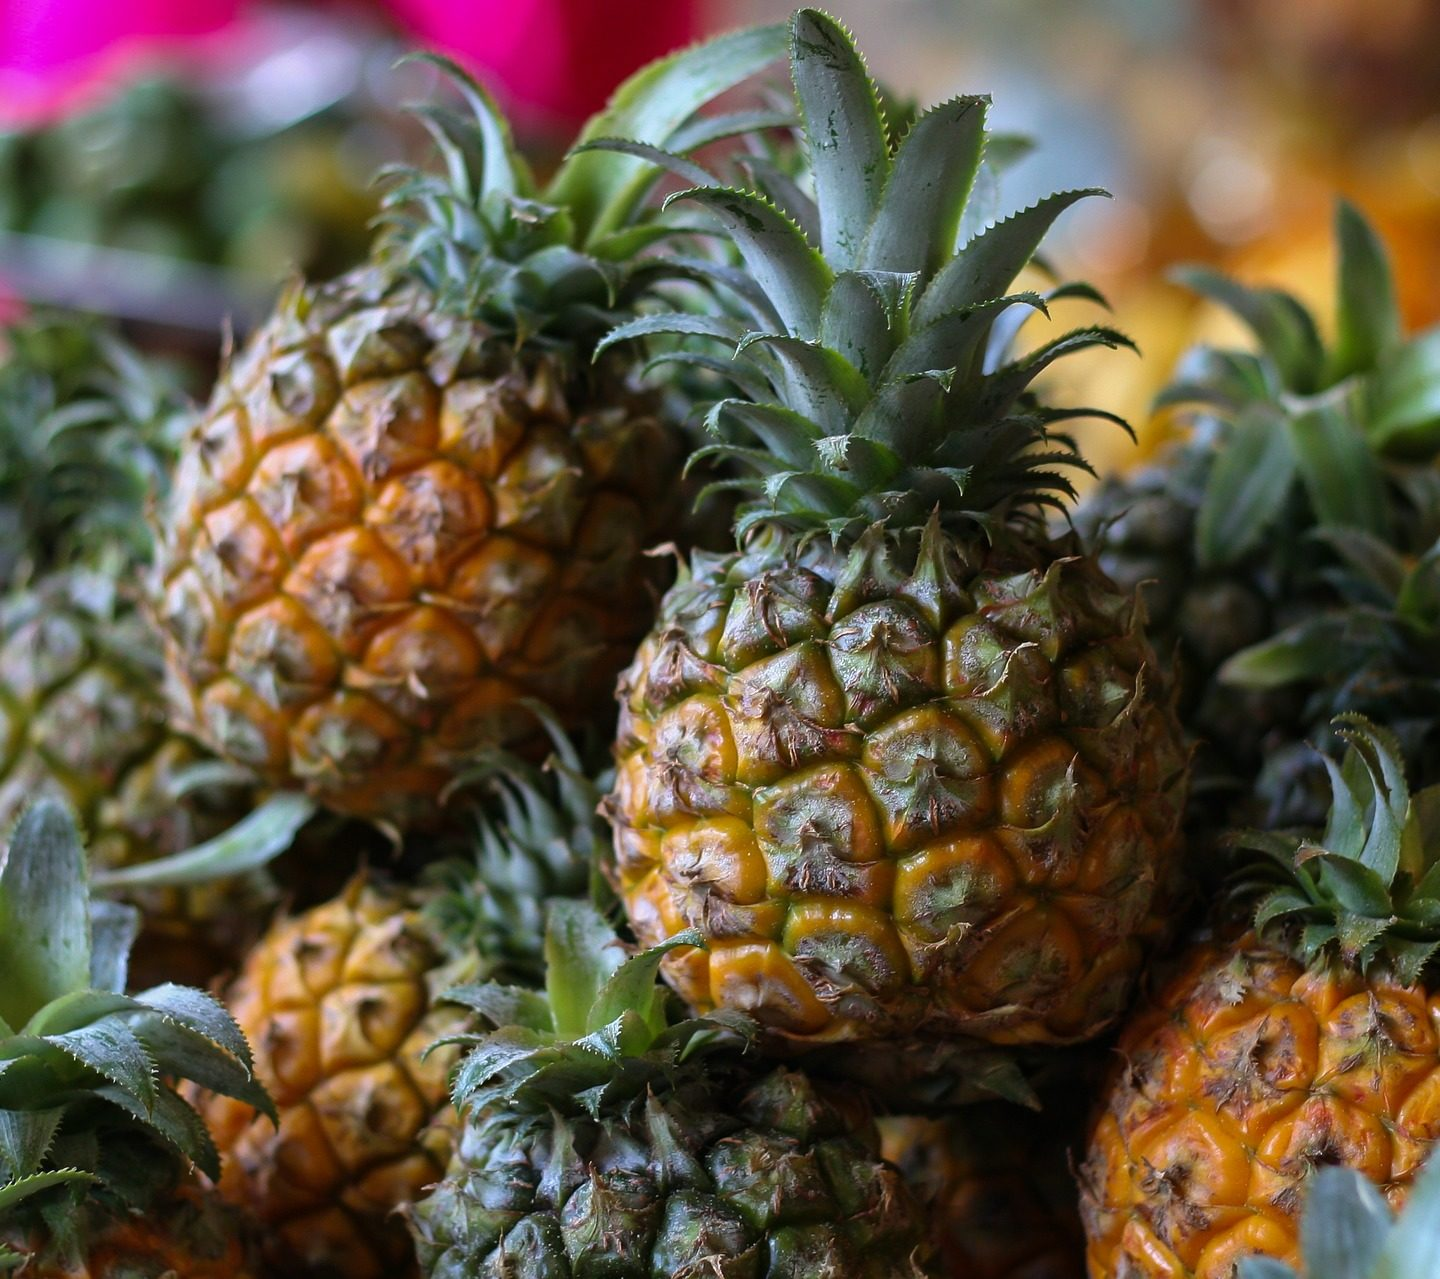 Protoplast isolation method for genetic improvement of pineapple